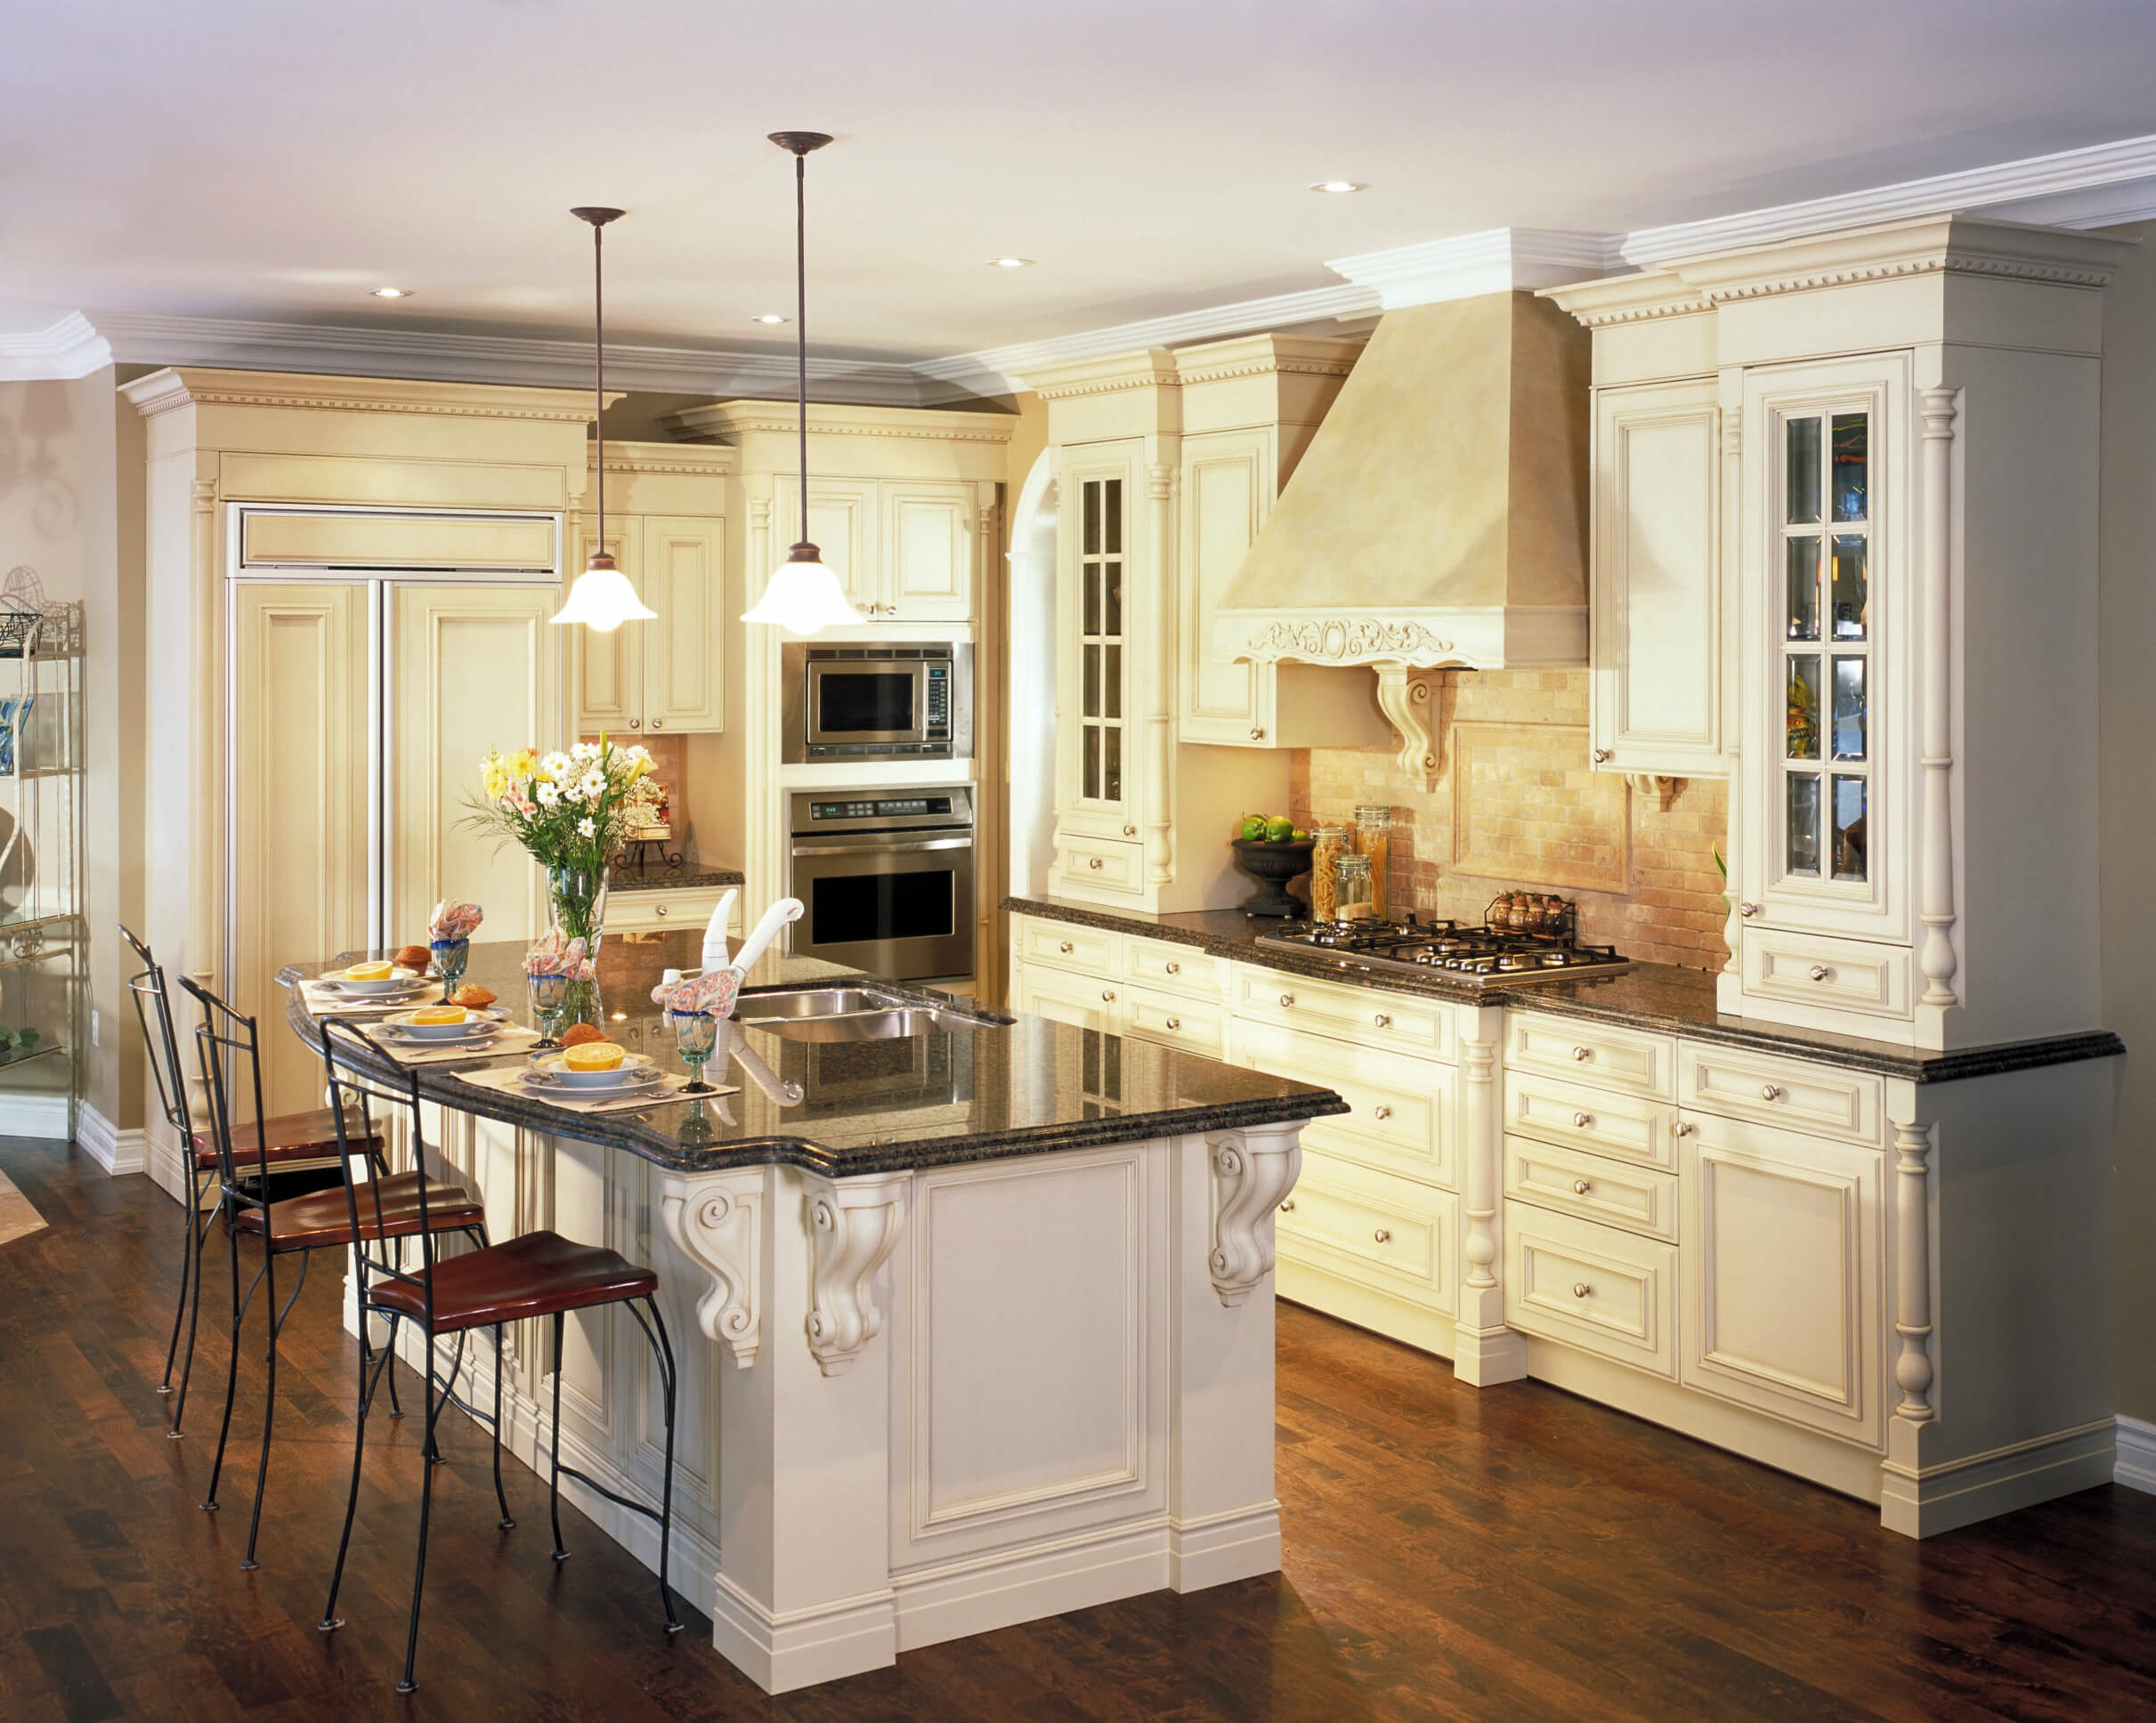 dream kitchen designs wood kitchen countertops Kitchen featuring great contrast between dark wood flooring white cabinetry and black marble countertops